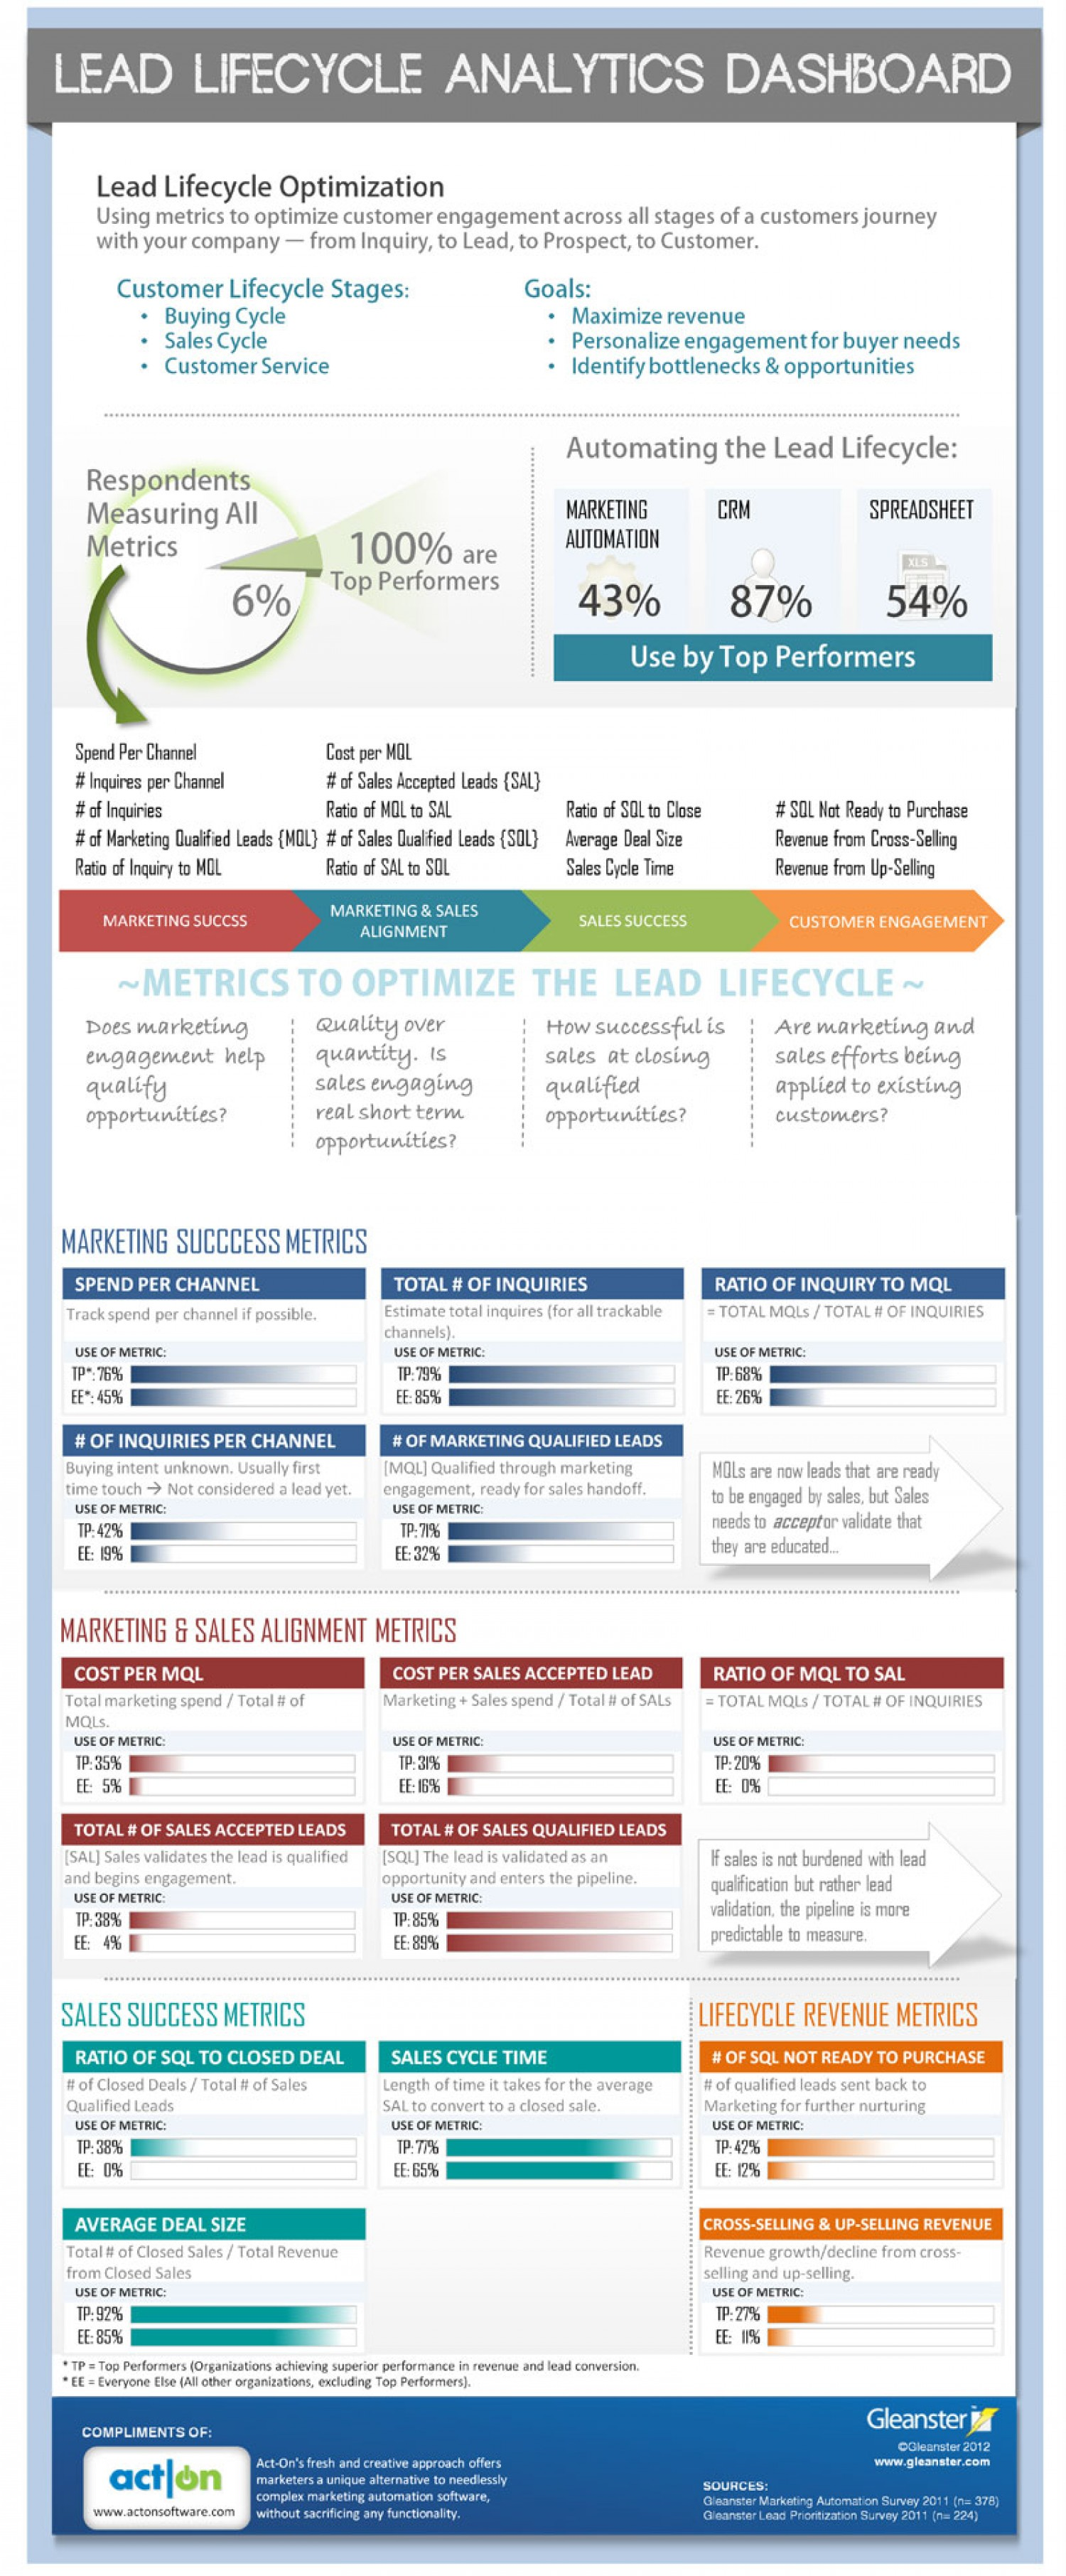 Lead Lifecycle Analytics